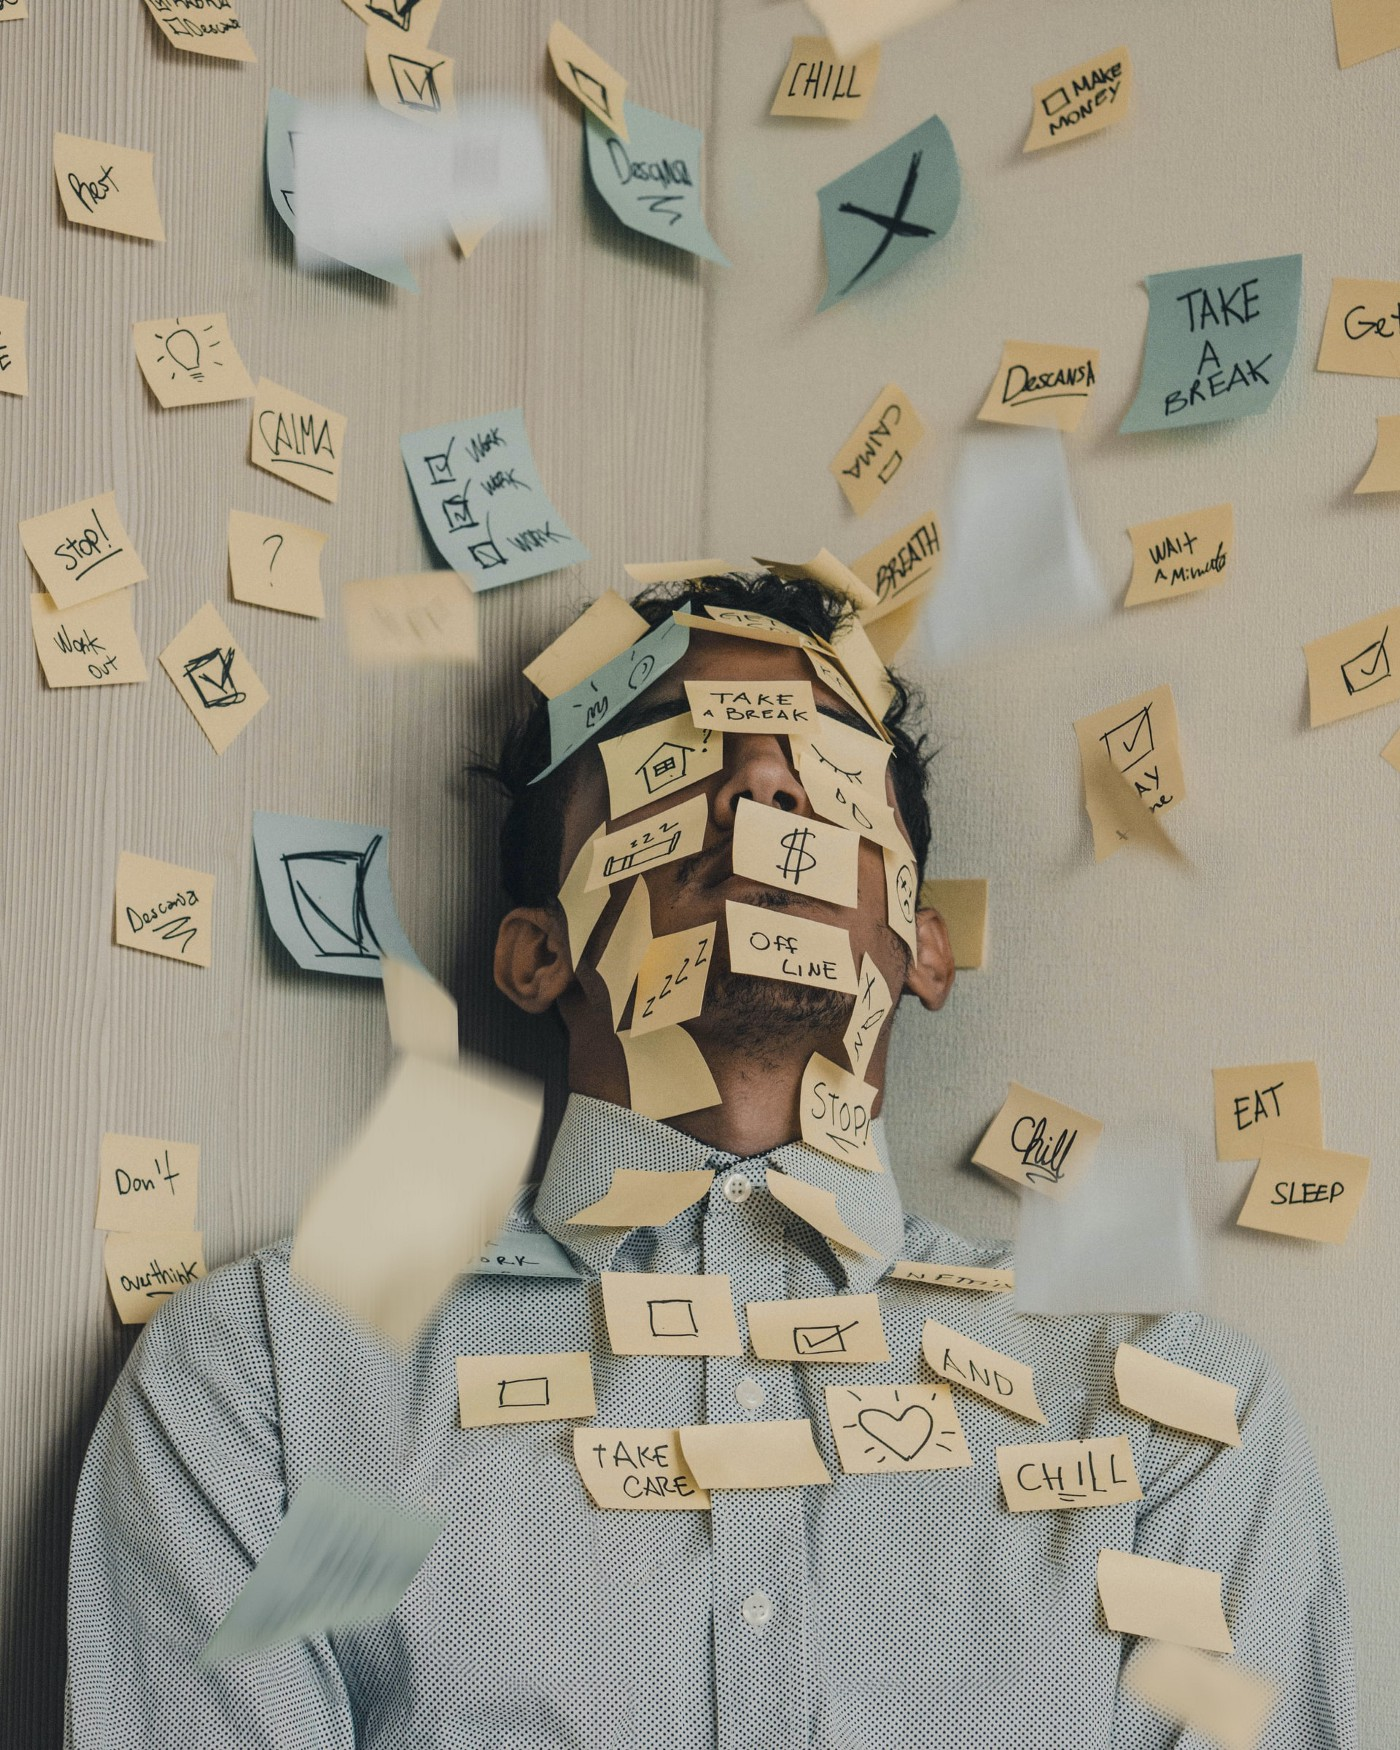 A person covered with Post-it notes